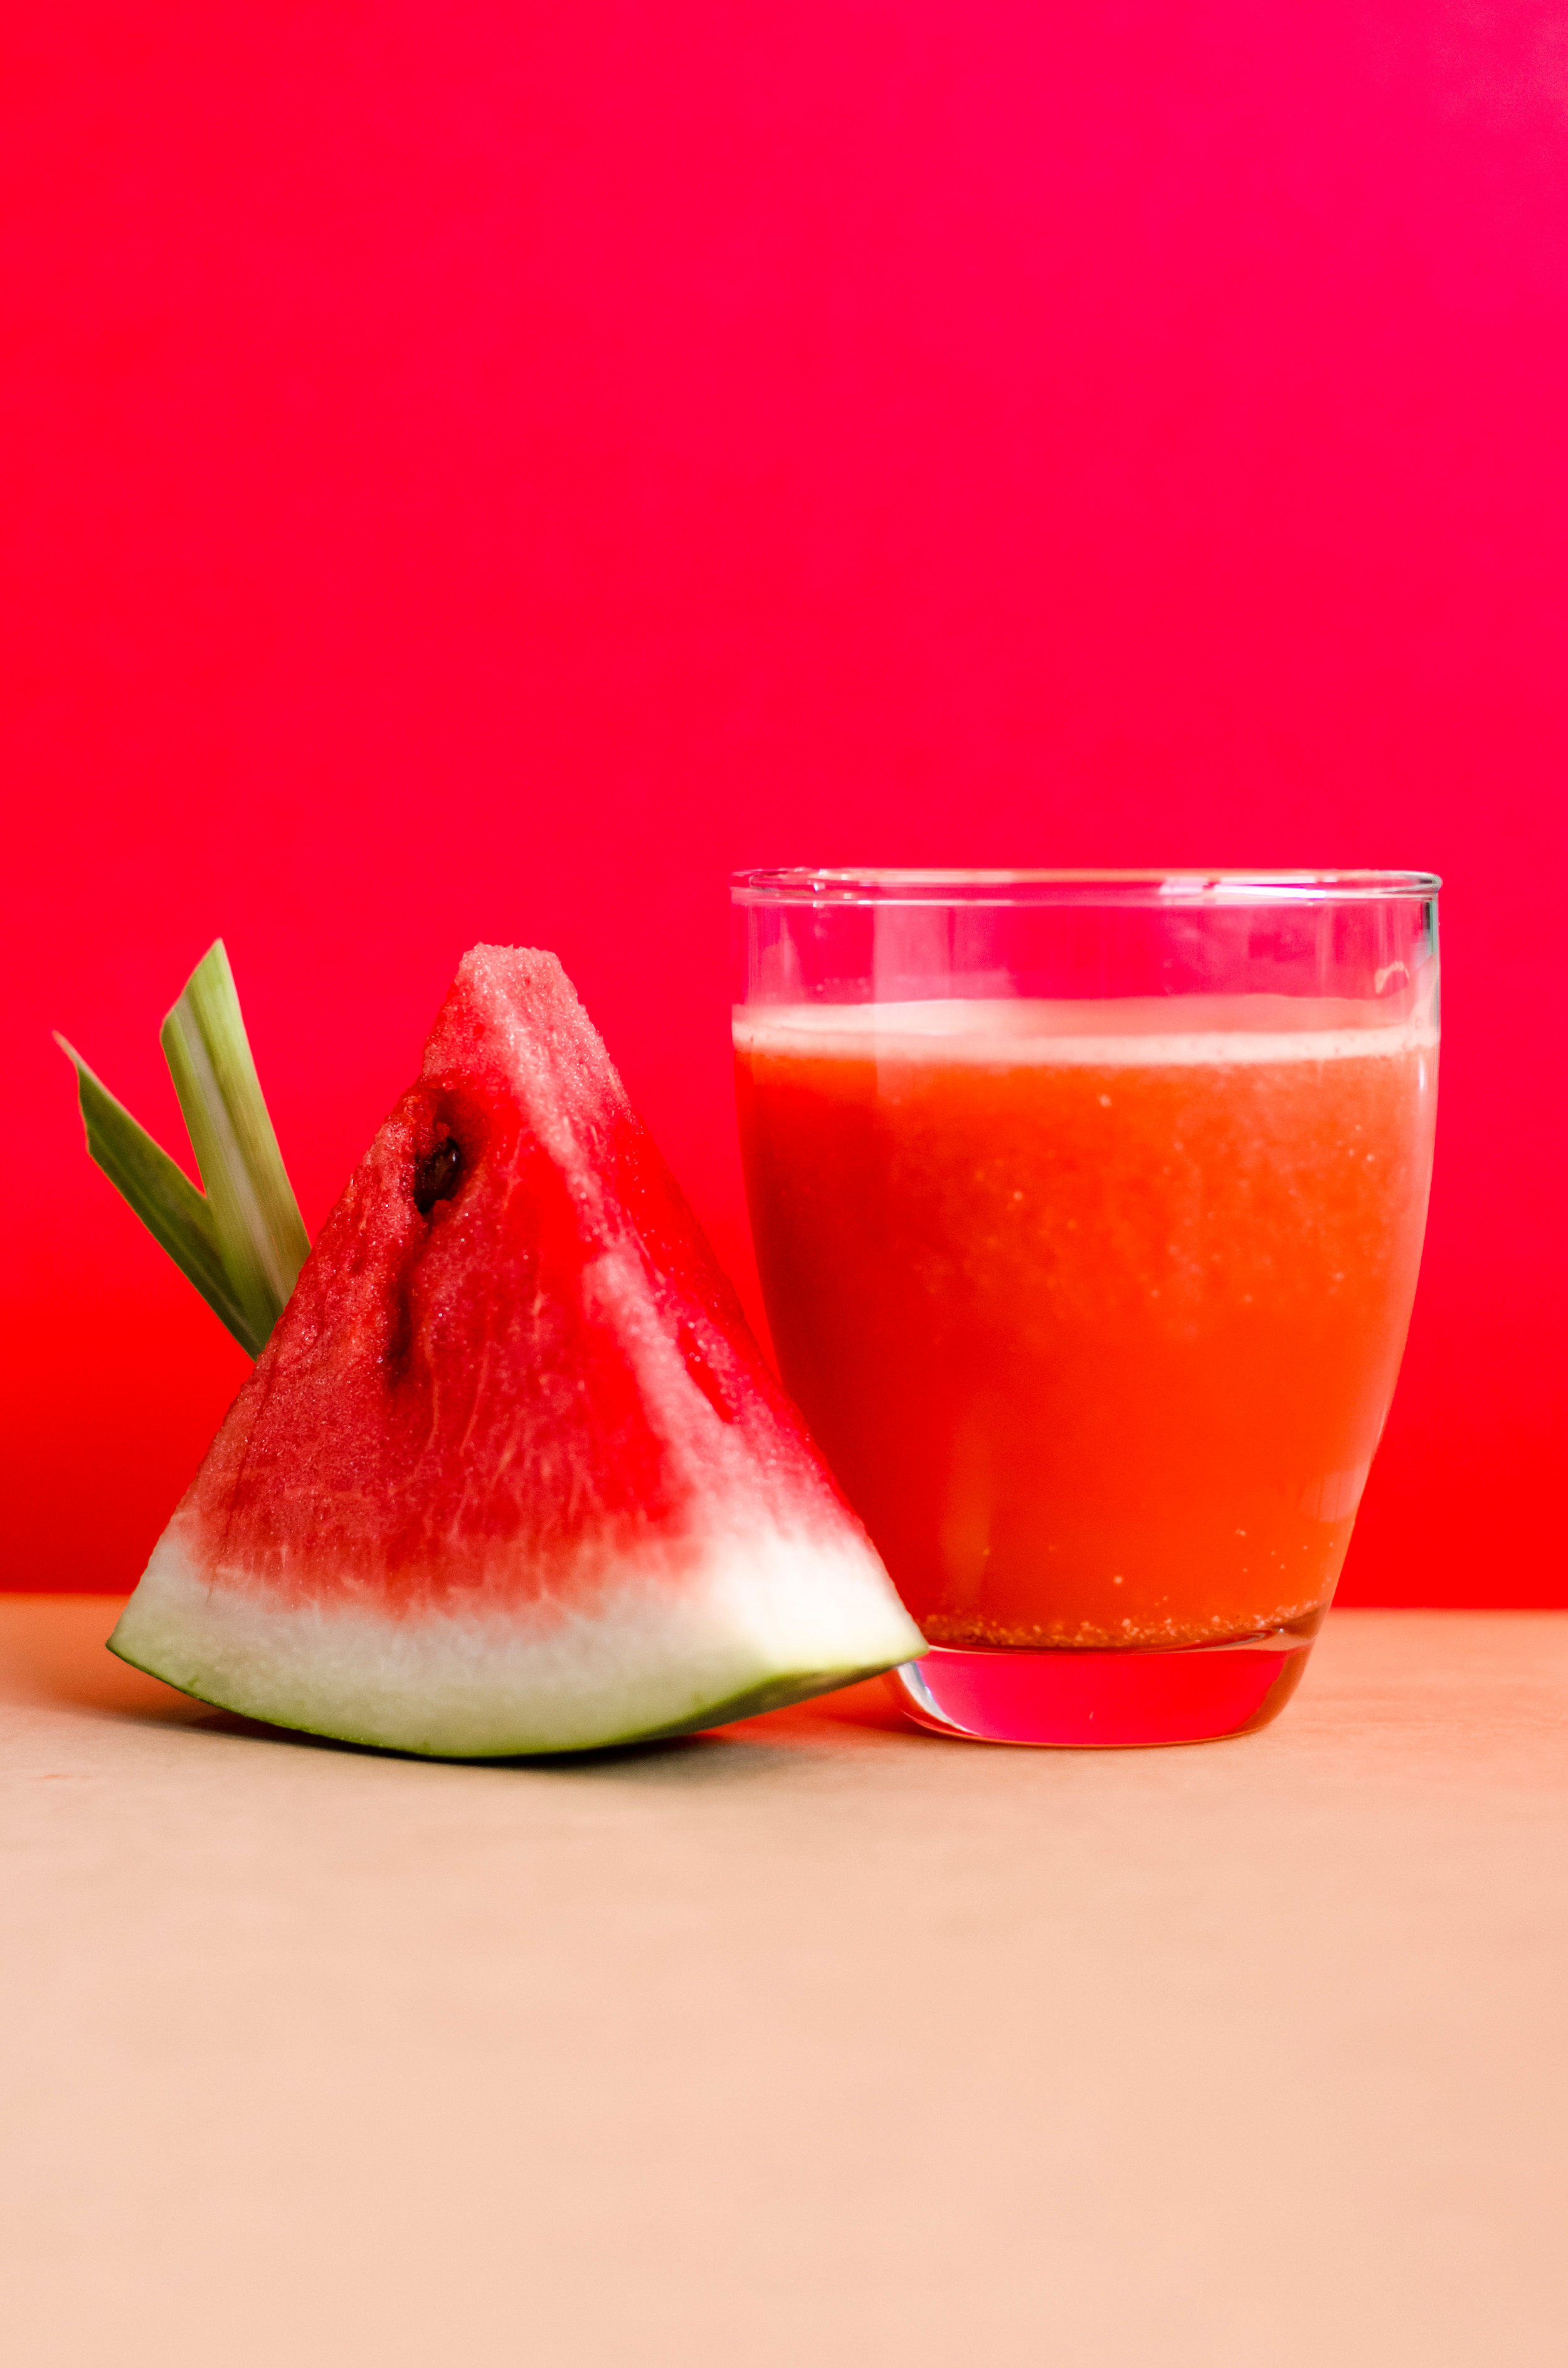 Canva - Watermelon Shake Filled Glass Cup Beside Sliced Watermelon Fruit on Brown Surface.jpg